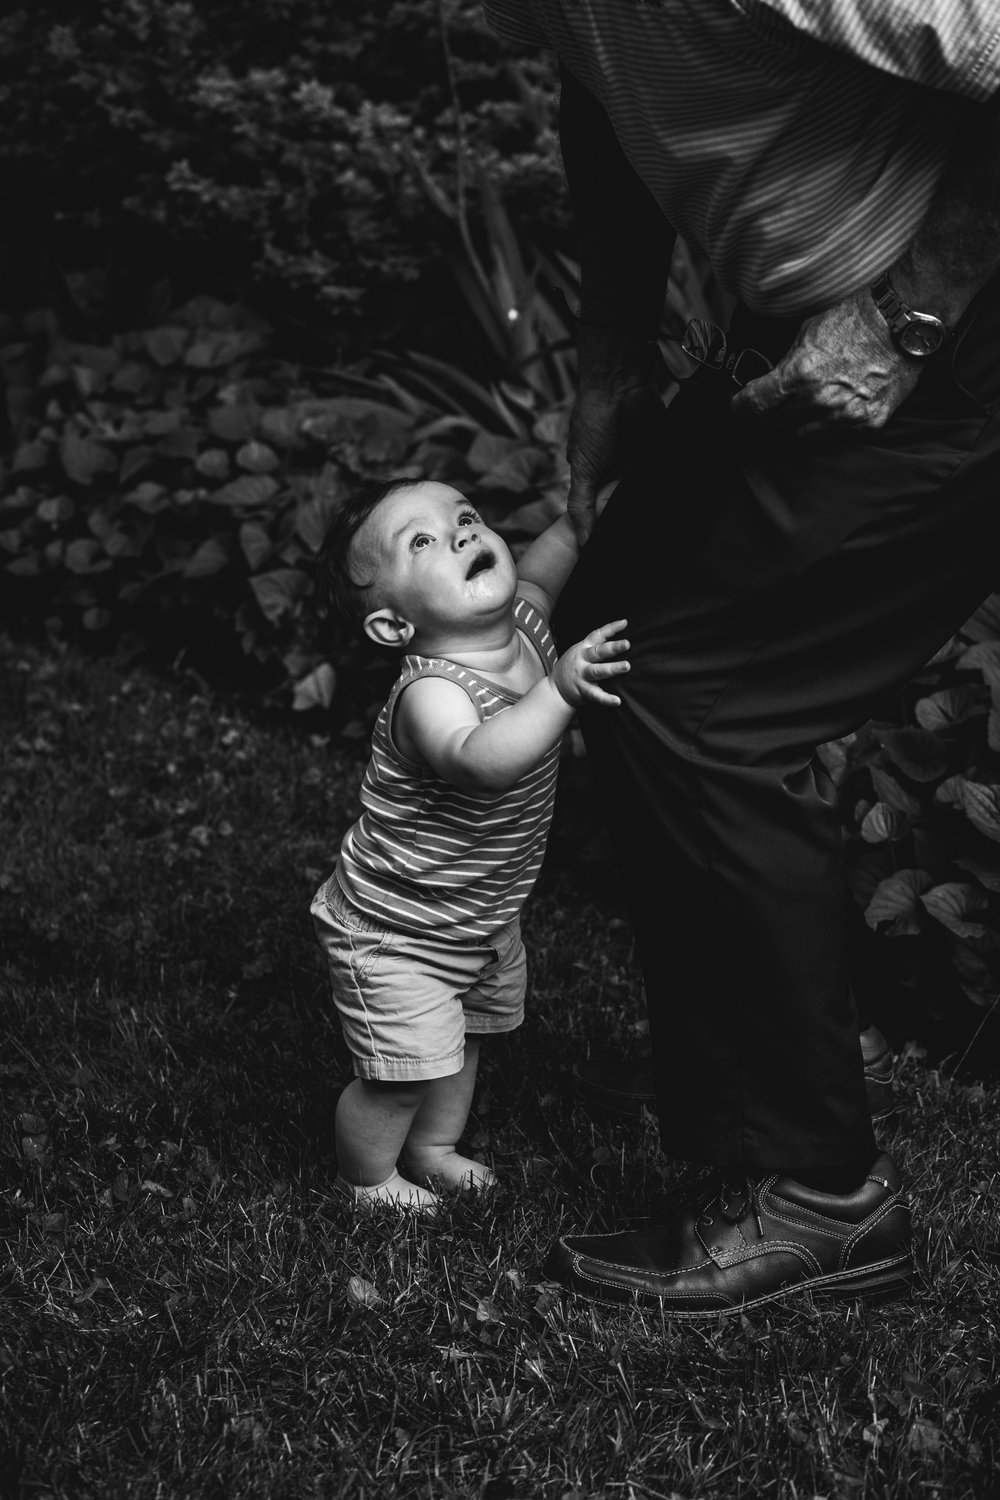 black and white photograph of toddler holding on to parent's let and looking up